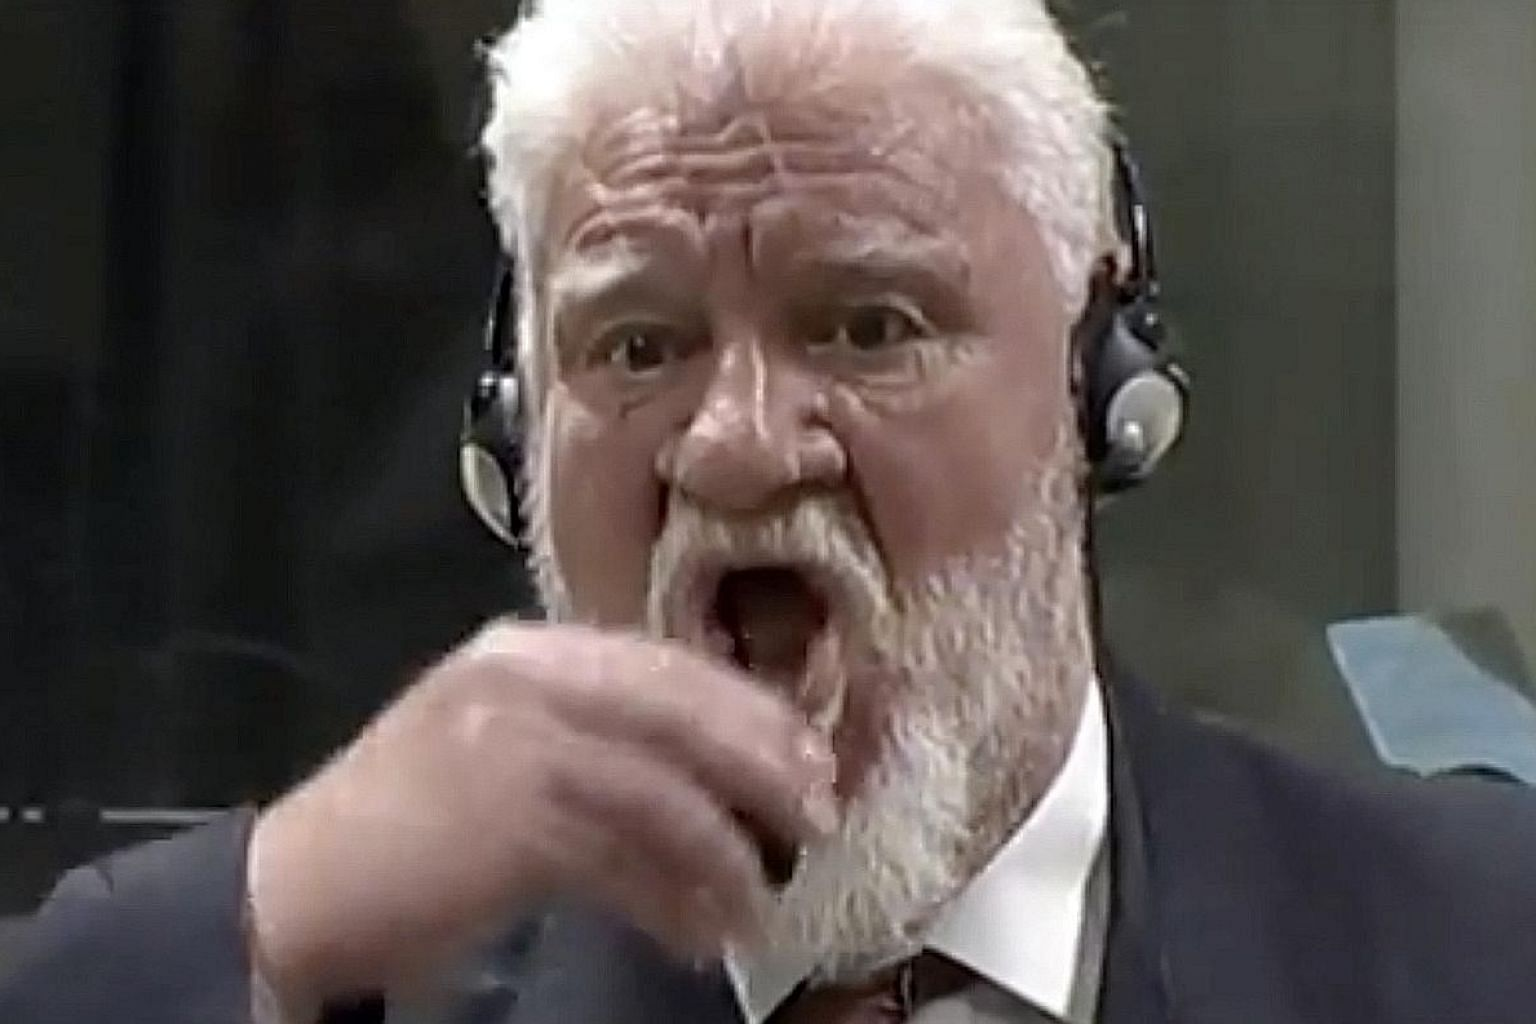 Slobodan Praljak seeming to swallow poison in court after judges sentenced him to 20 years in prison for war crimes, at The Hague, Netherlands, on Wednesday.